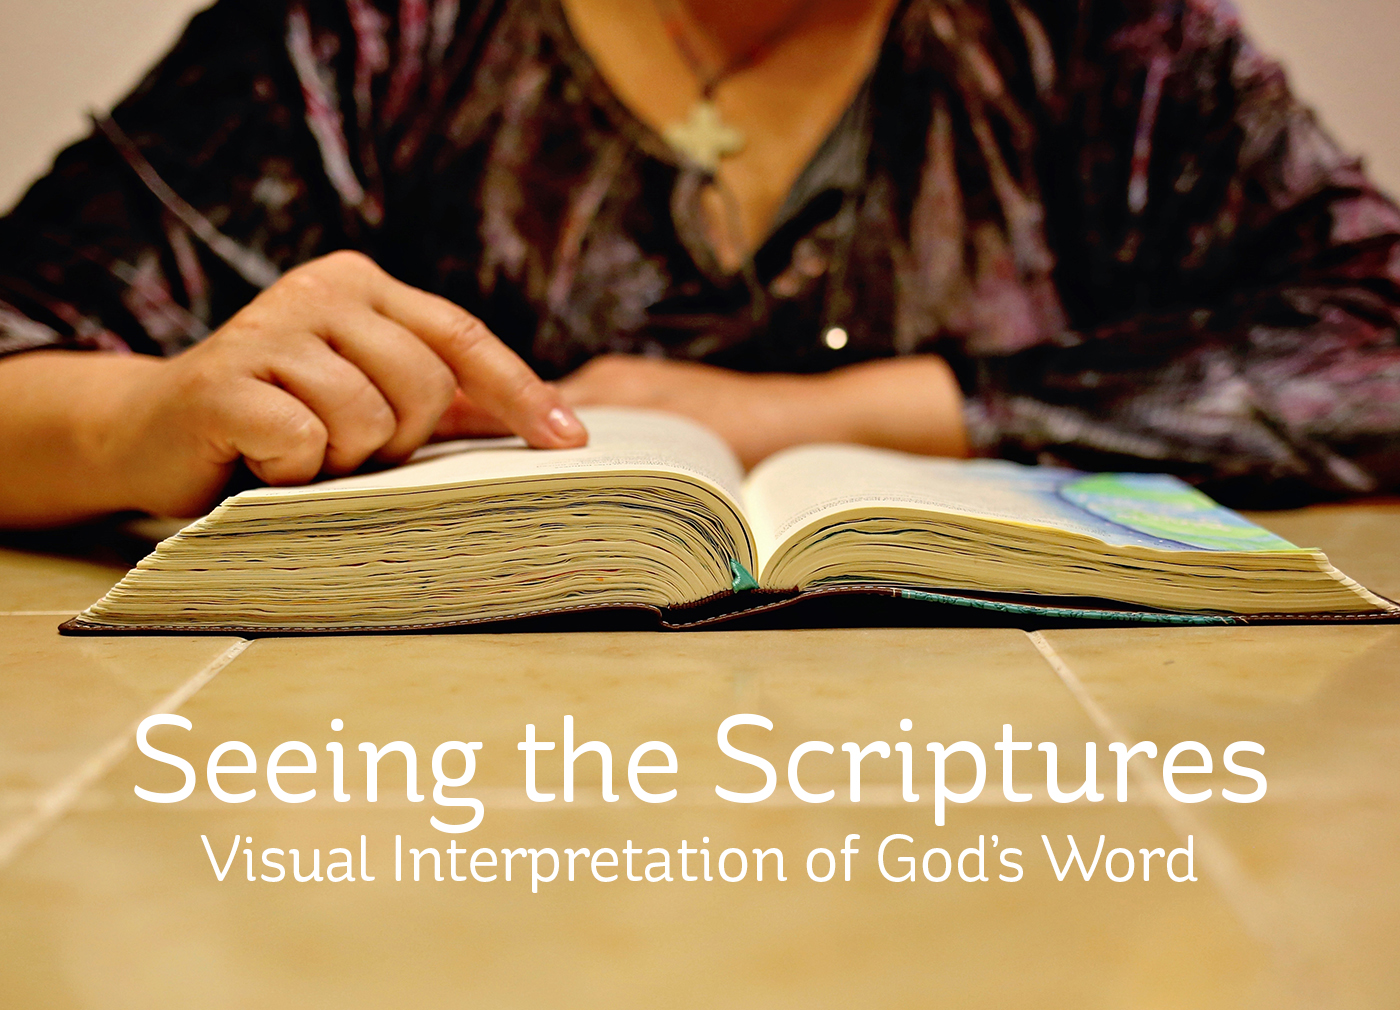 Seeing the Scriptures: Visual Interpretation of God's Word